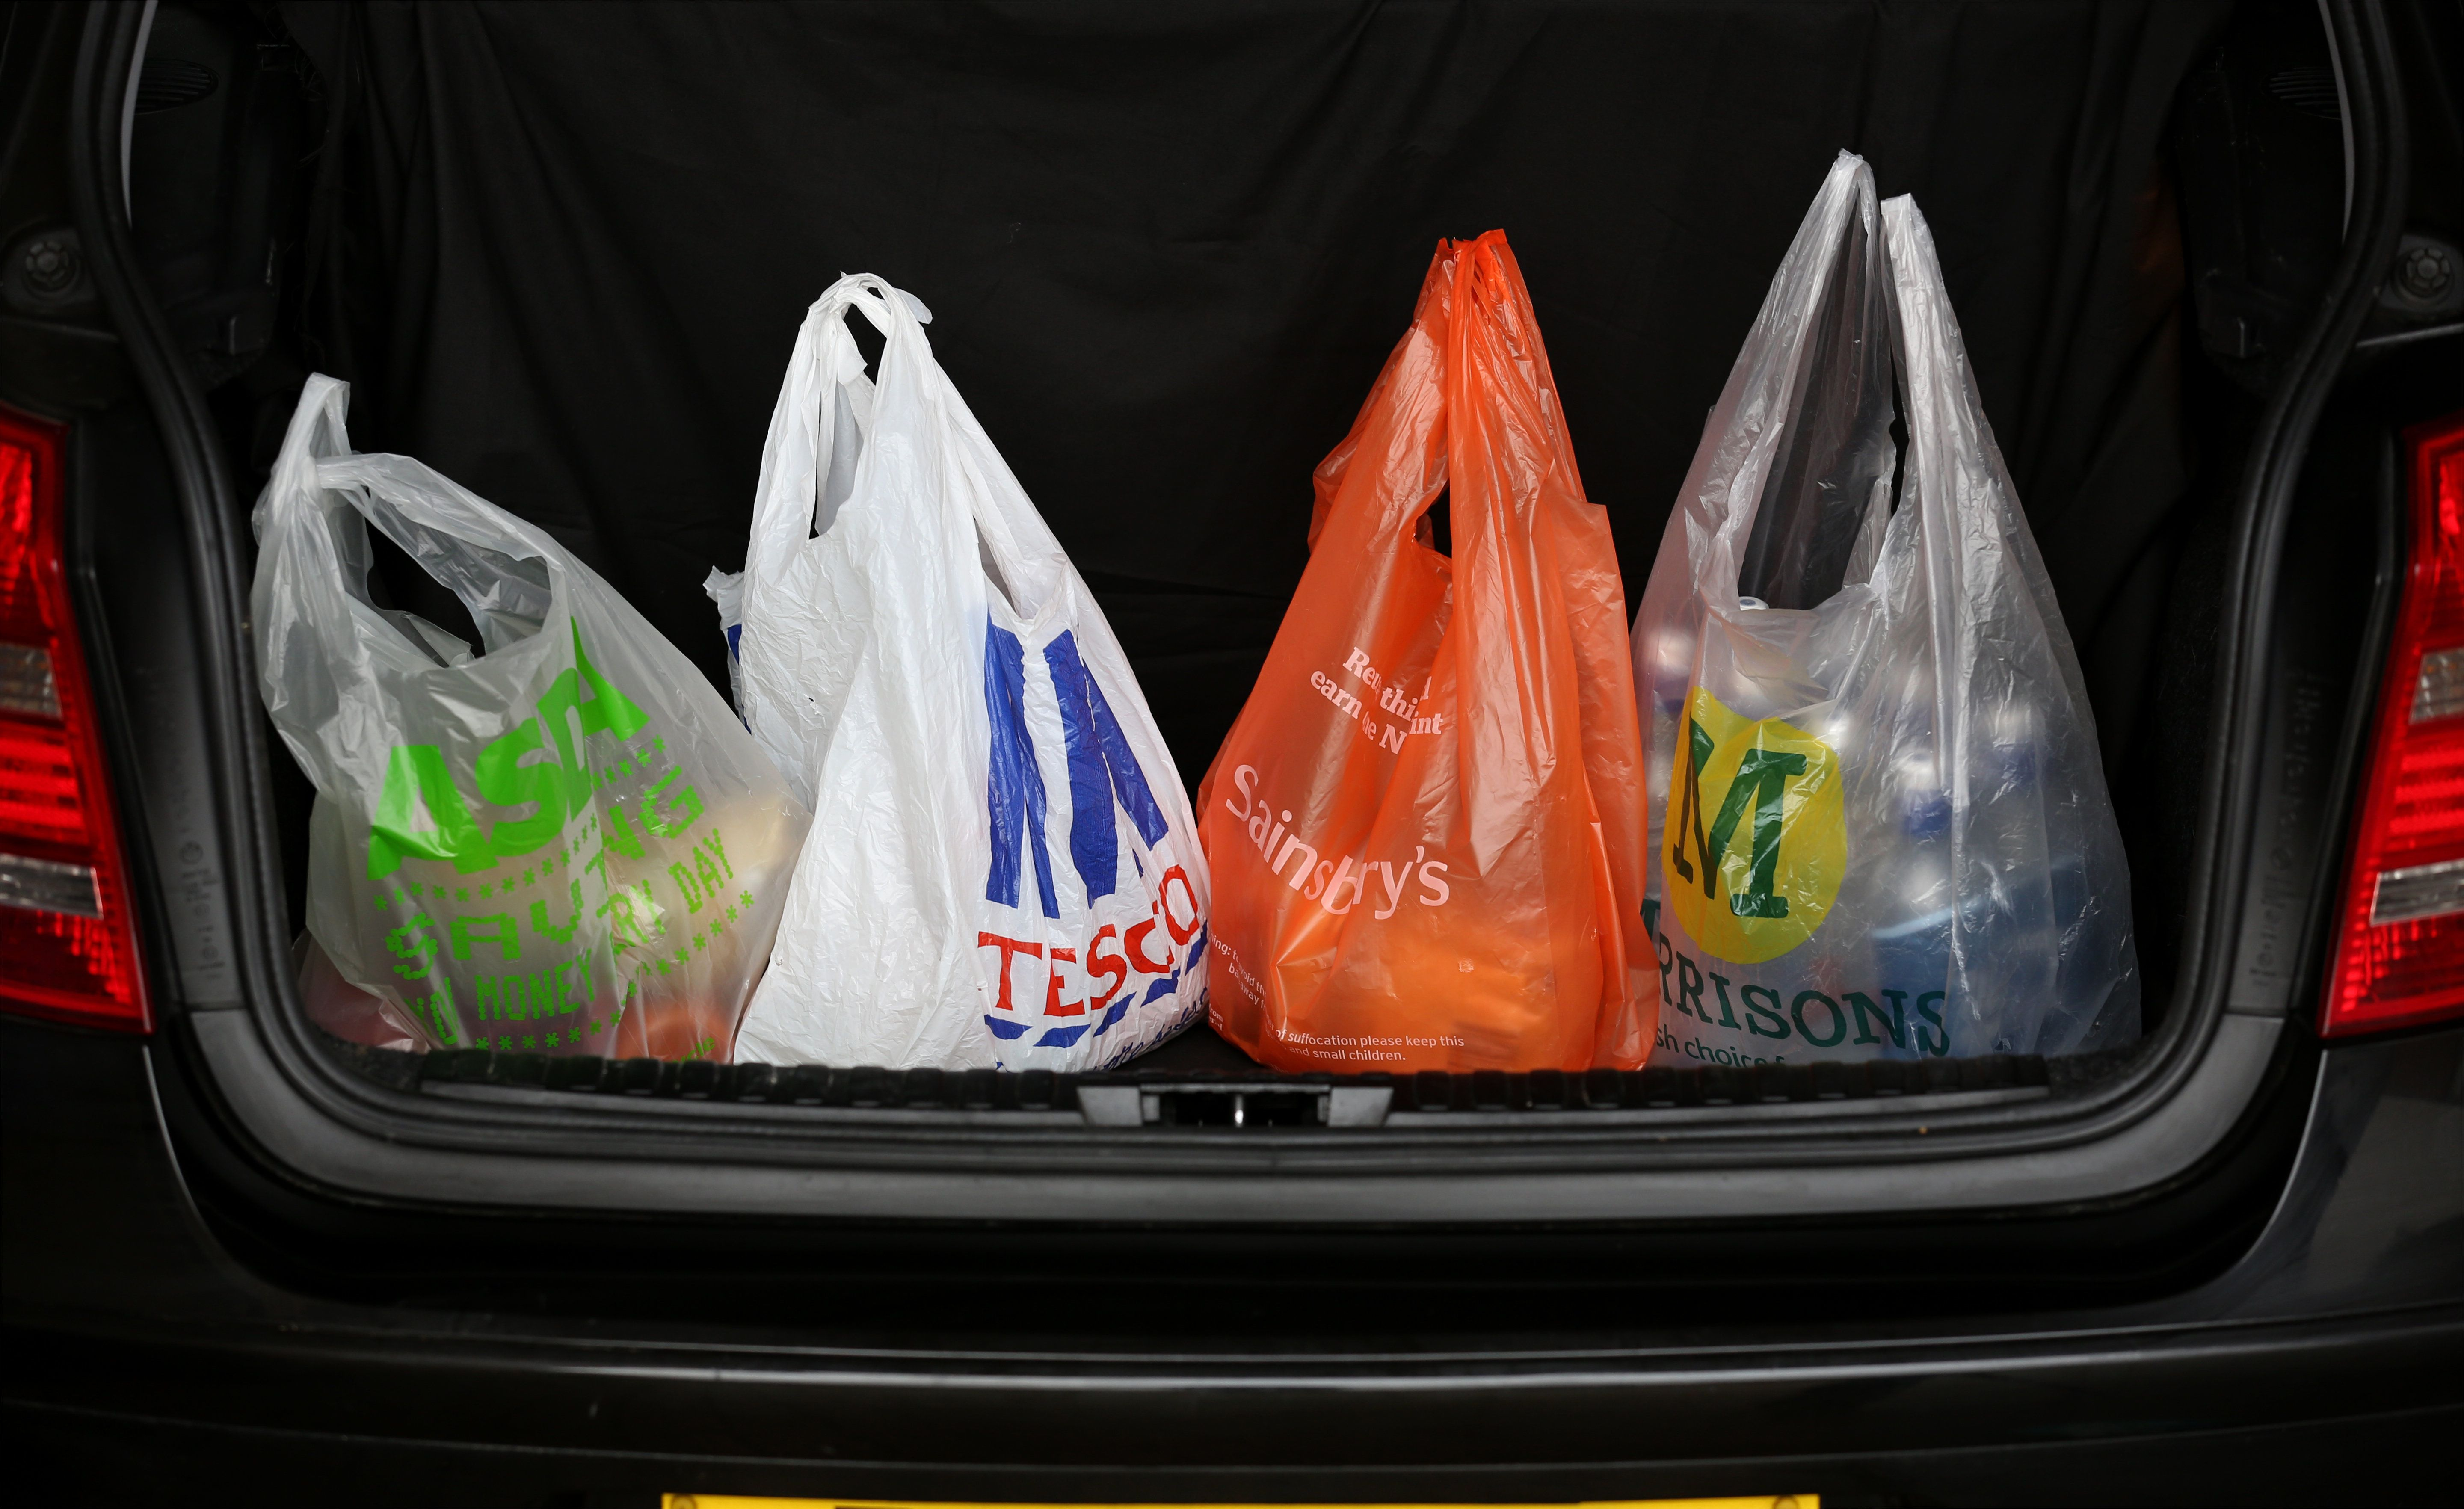 Shopping is costing families more post-Brexit, experts say.